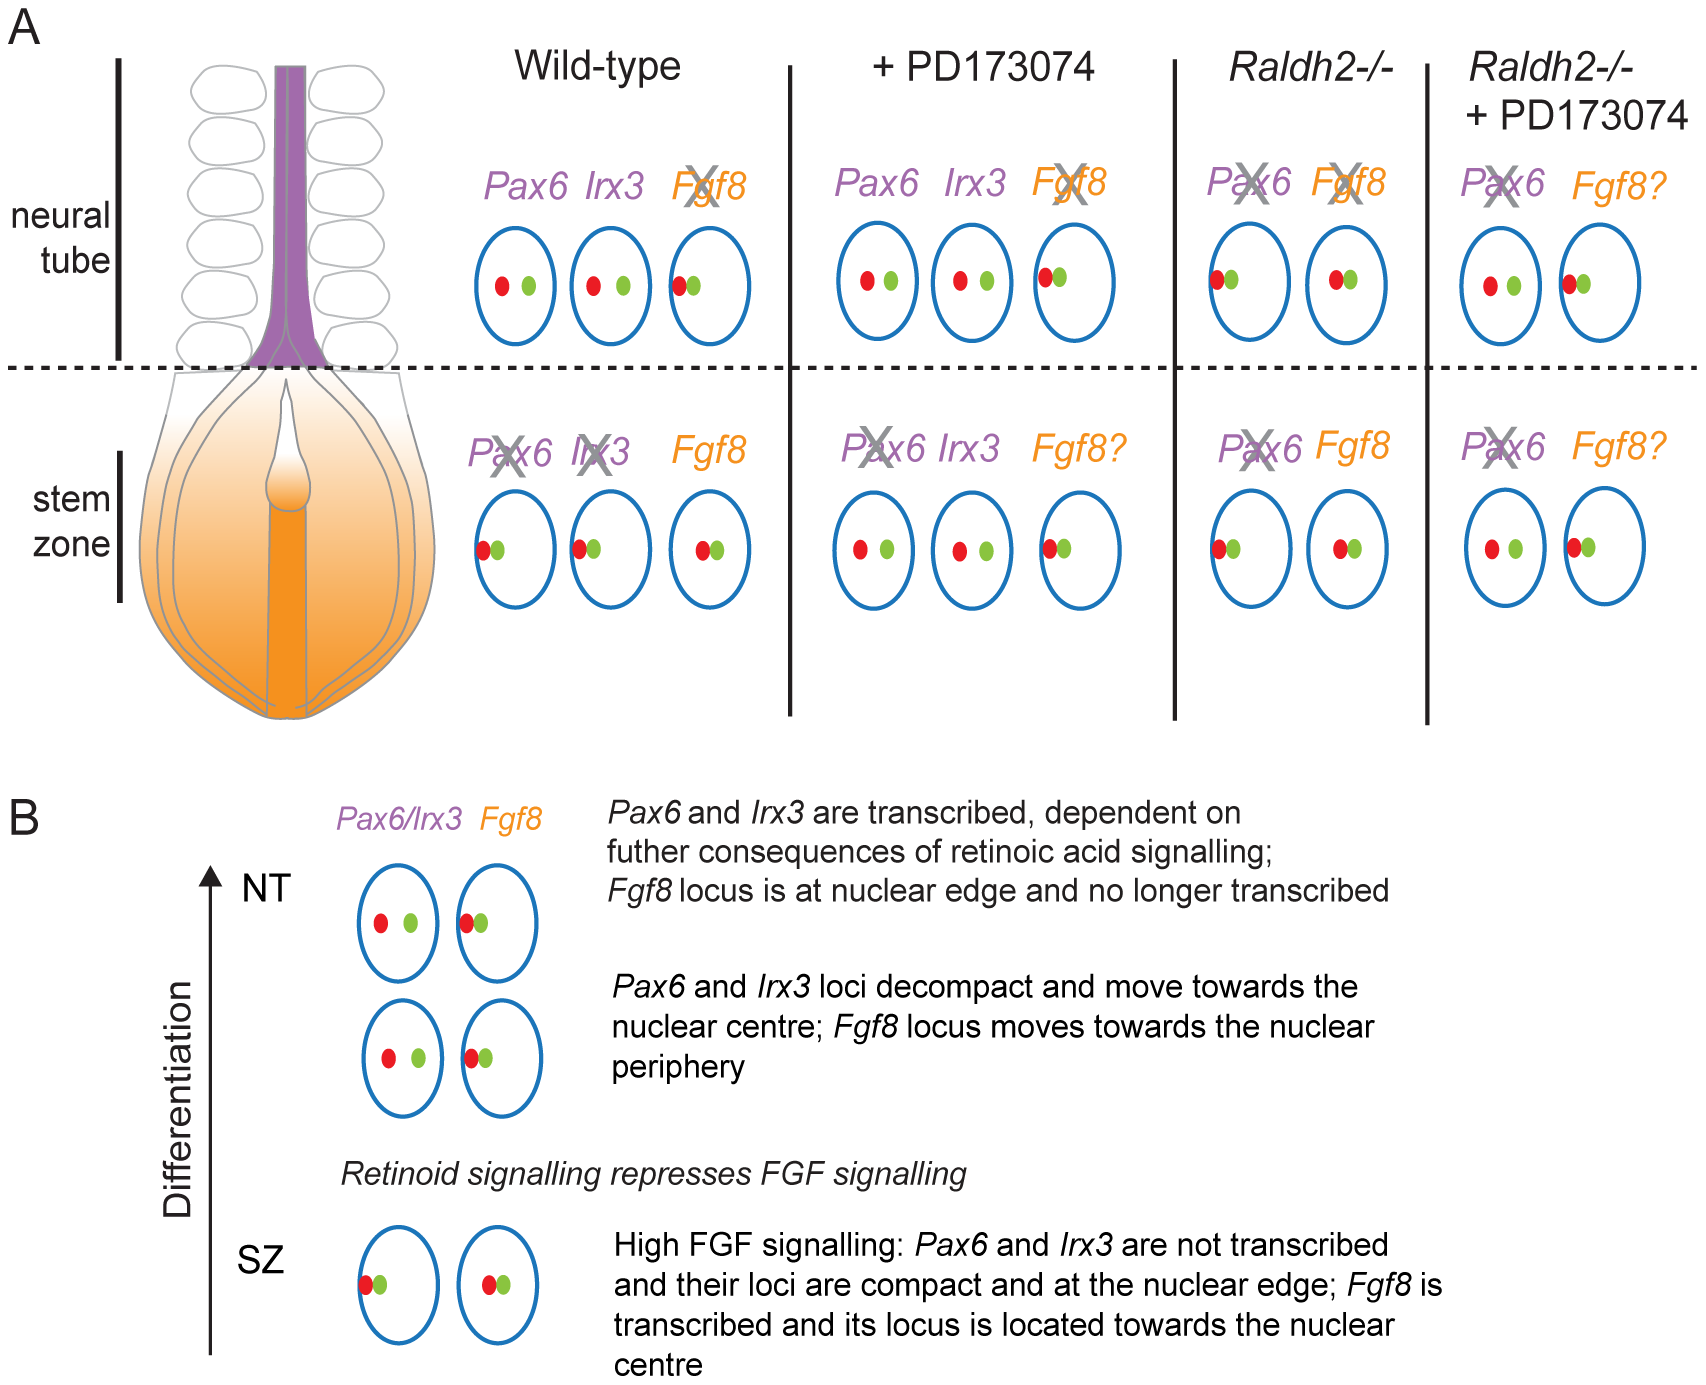 Changes in chromatin compaction and nuclear position of <i>Pax6</i> and <i>Fgf8</i> loci during neural differentiation and following manipulation of retinoid and/or FGF signalling.